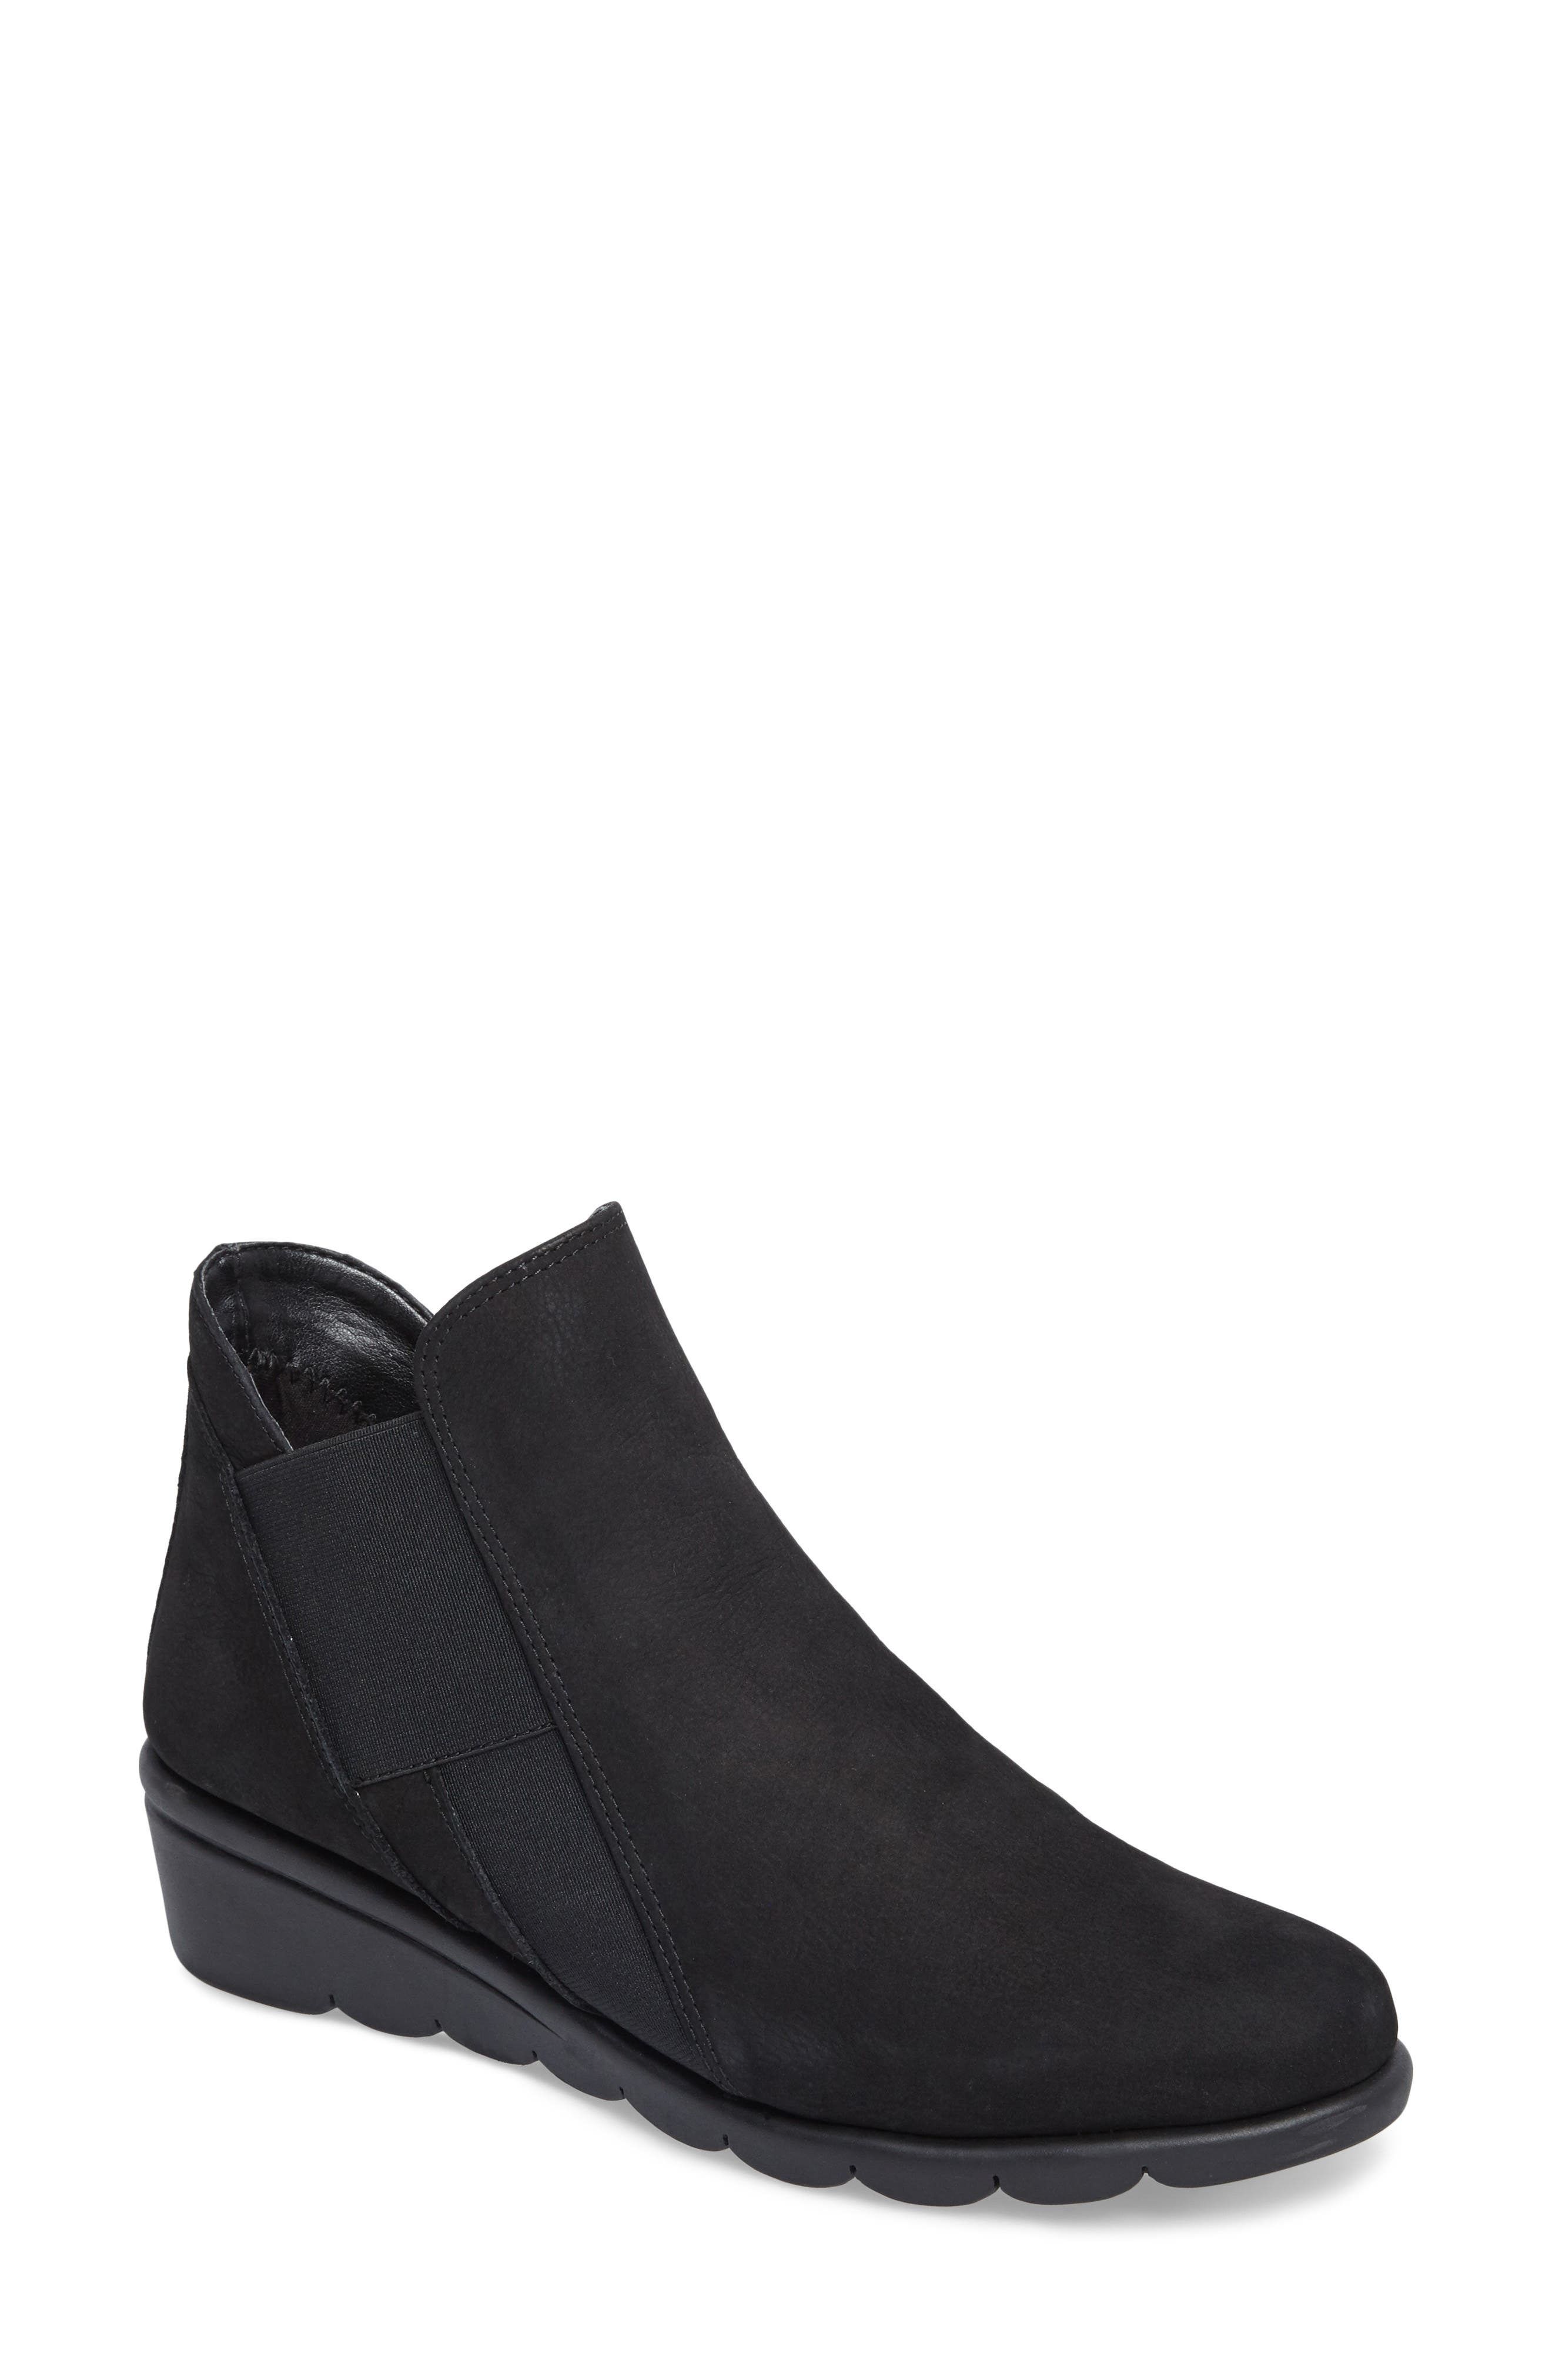 Jump Bootie,                         Main,                         color,